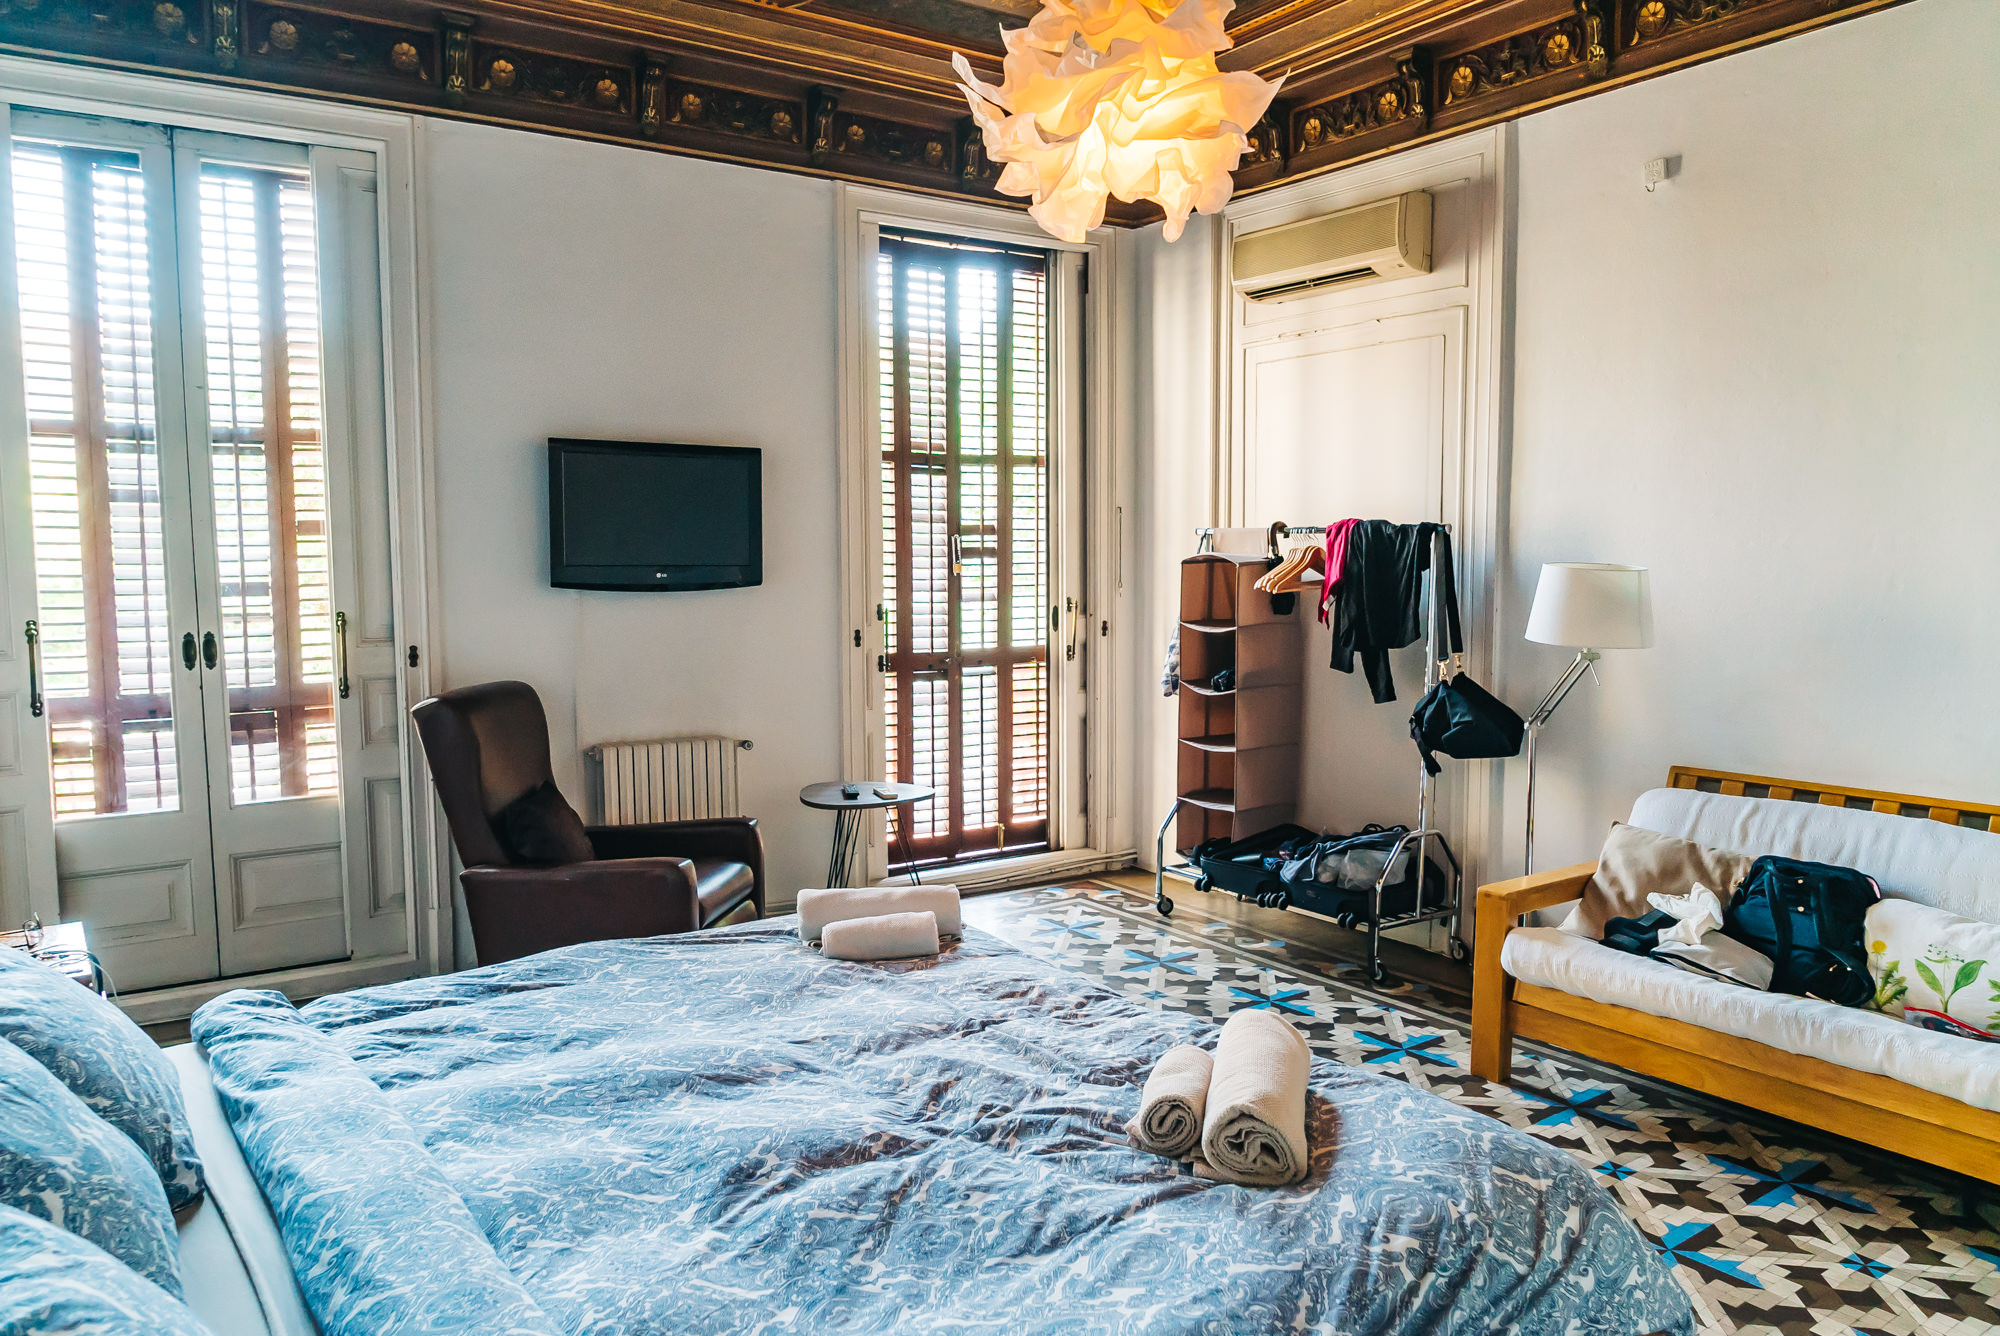 Airbnb in Barcelona built in the 1800's